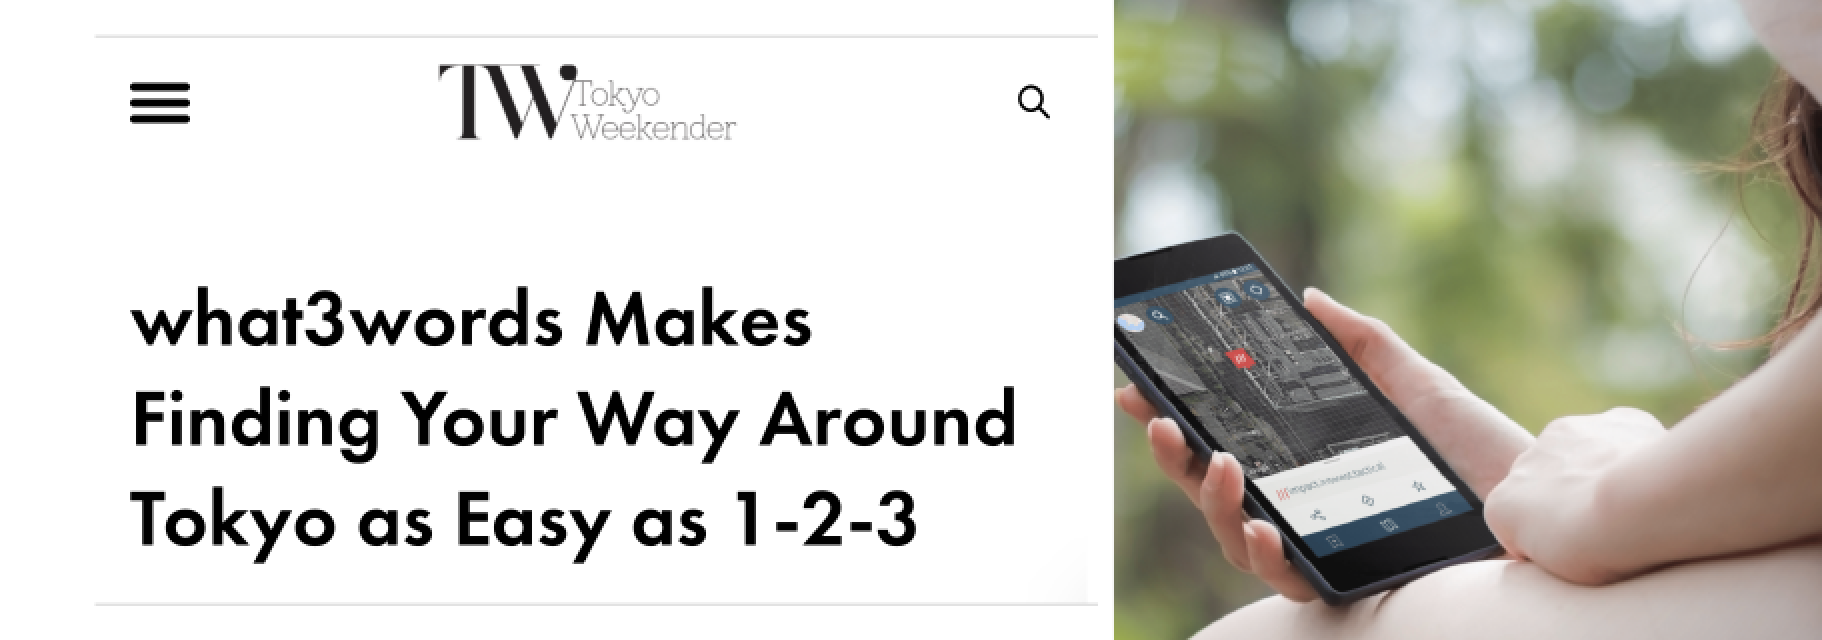 Tokyo weekender shares article 'what3words Makes Finding Your Way Around Tokyo as Easy as 1-2-3